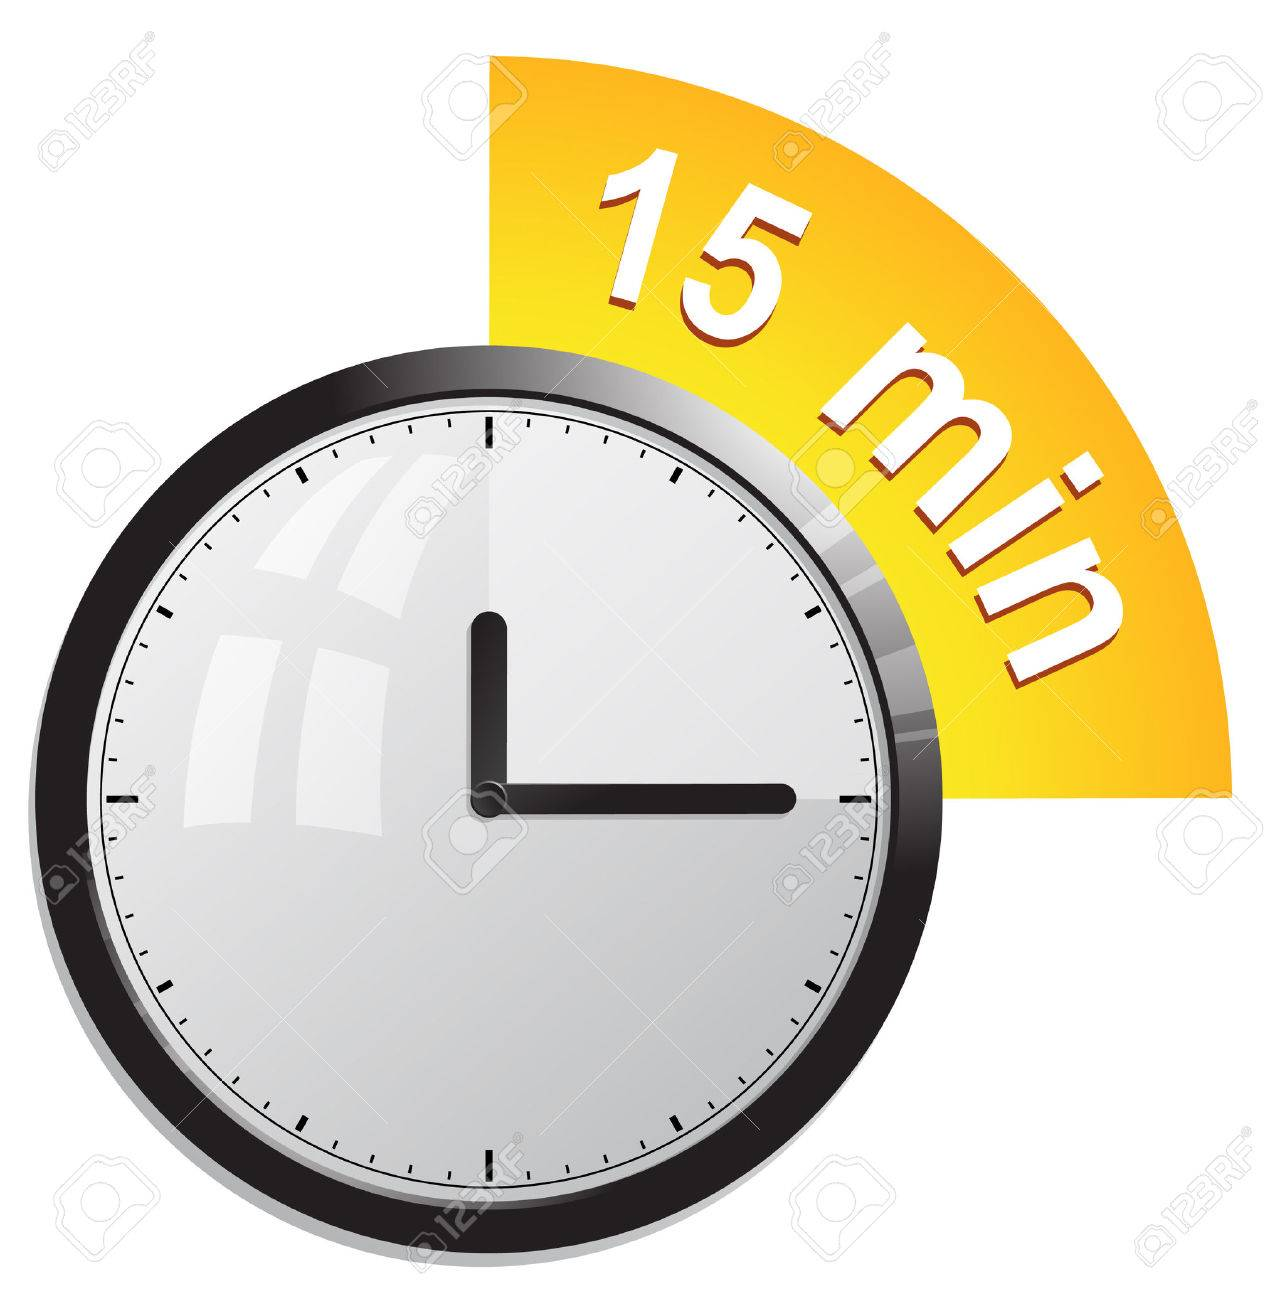 clock timer 15 minutes royalty free cliparts vectors and stock